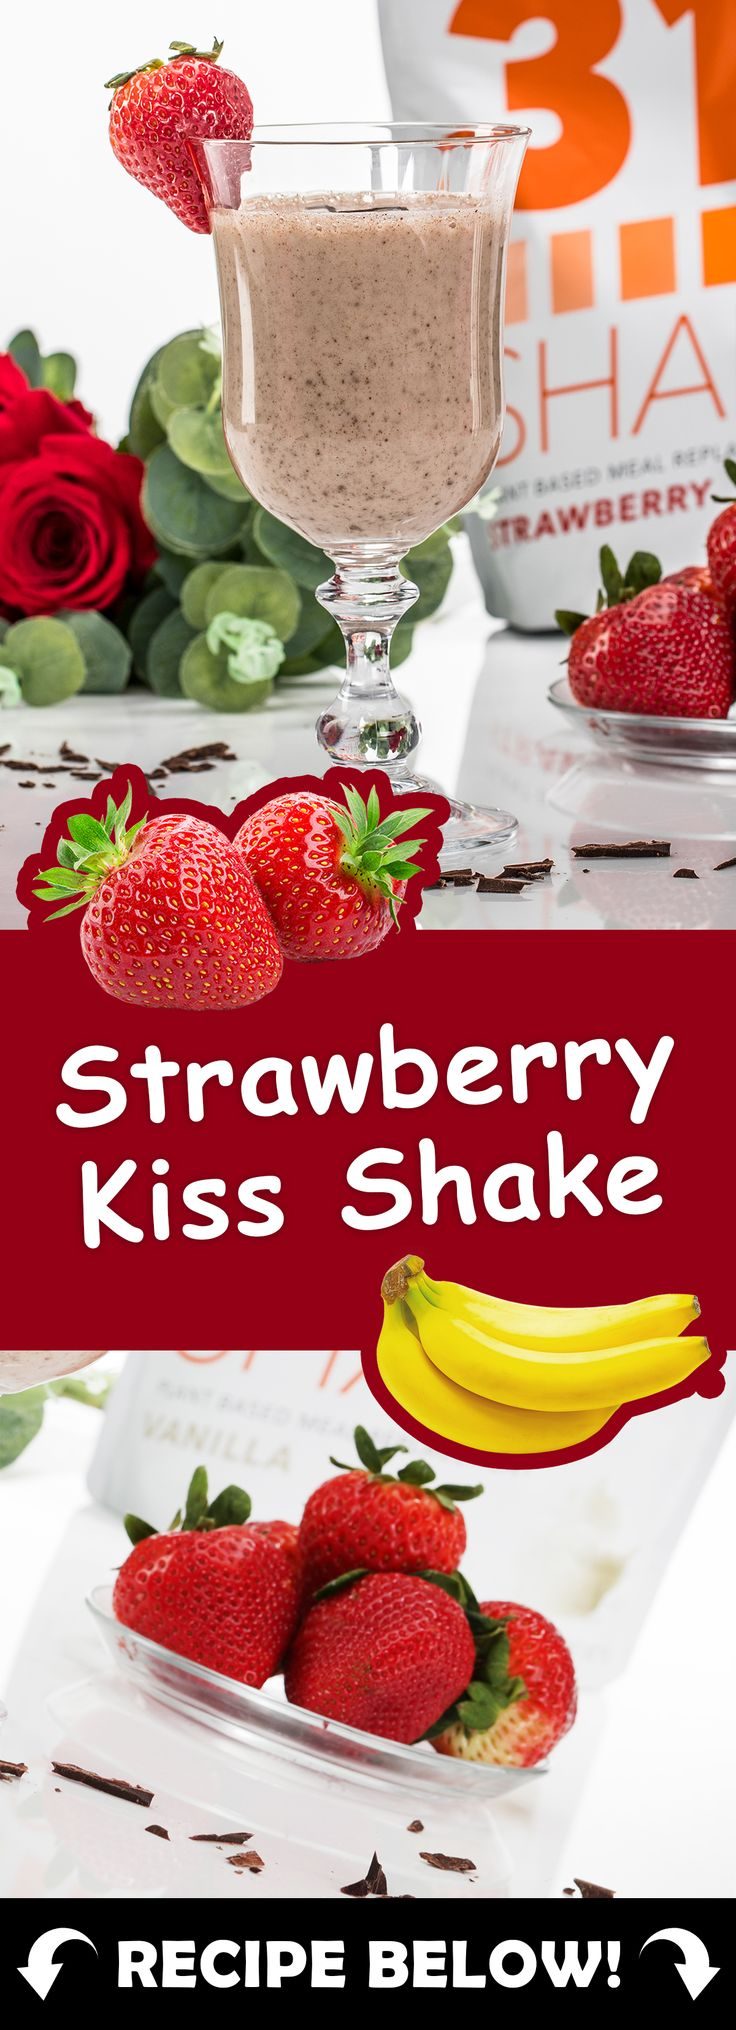 1 cup unsweetened vanilla almond milk, 1 scoop of 310 Shake Strawberry, 3 frozen strawberries, 1/4 medium banana, 1/2 tbsp 85% dark chocolate cacao nibs, 1 tbsp almond butter, dark chocolate shavings (optional) & Blend! :: Look for top meal replacement shakes to use in the recipe by visiting the link! ::